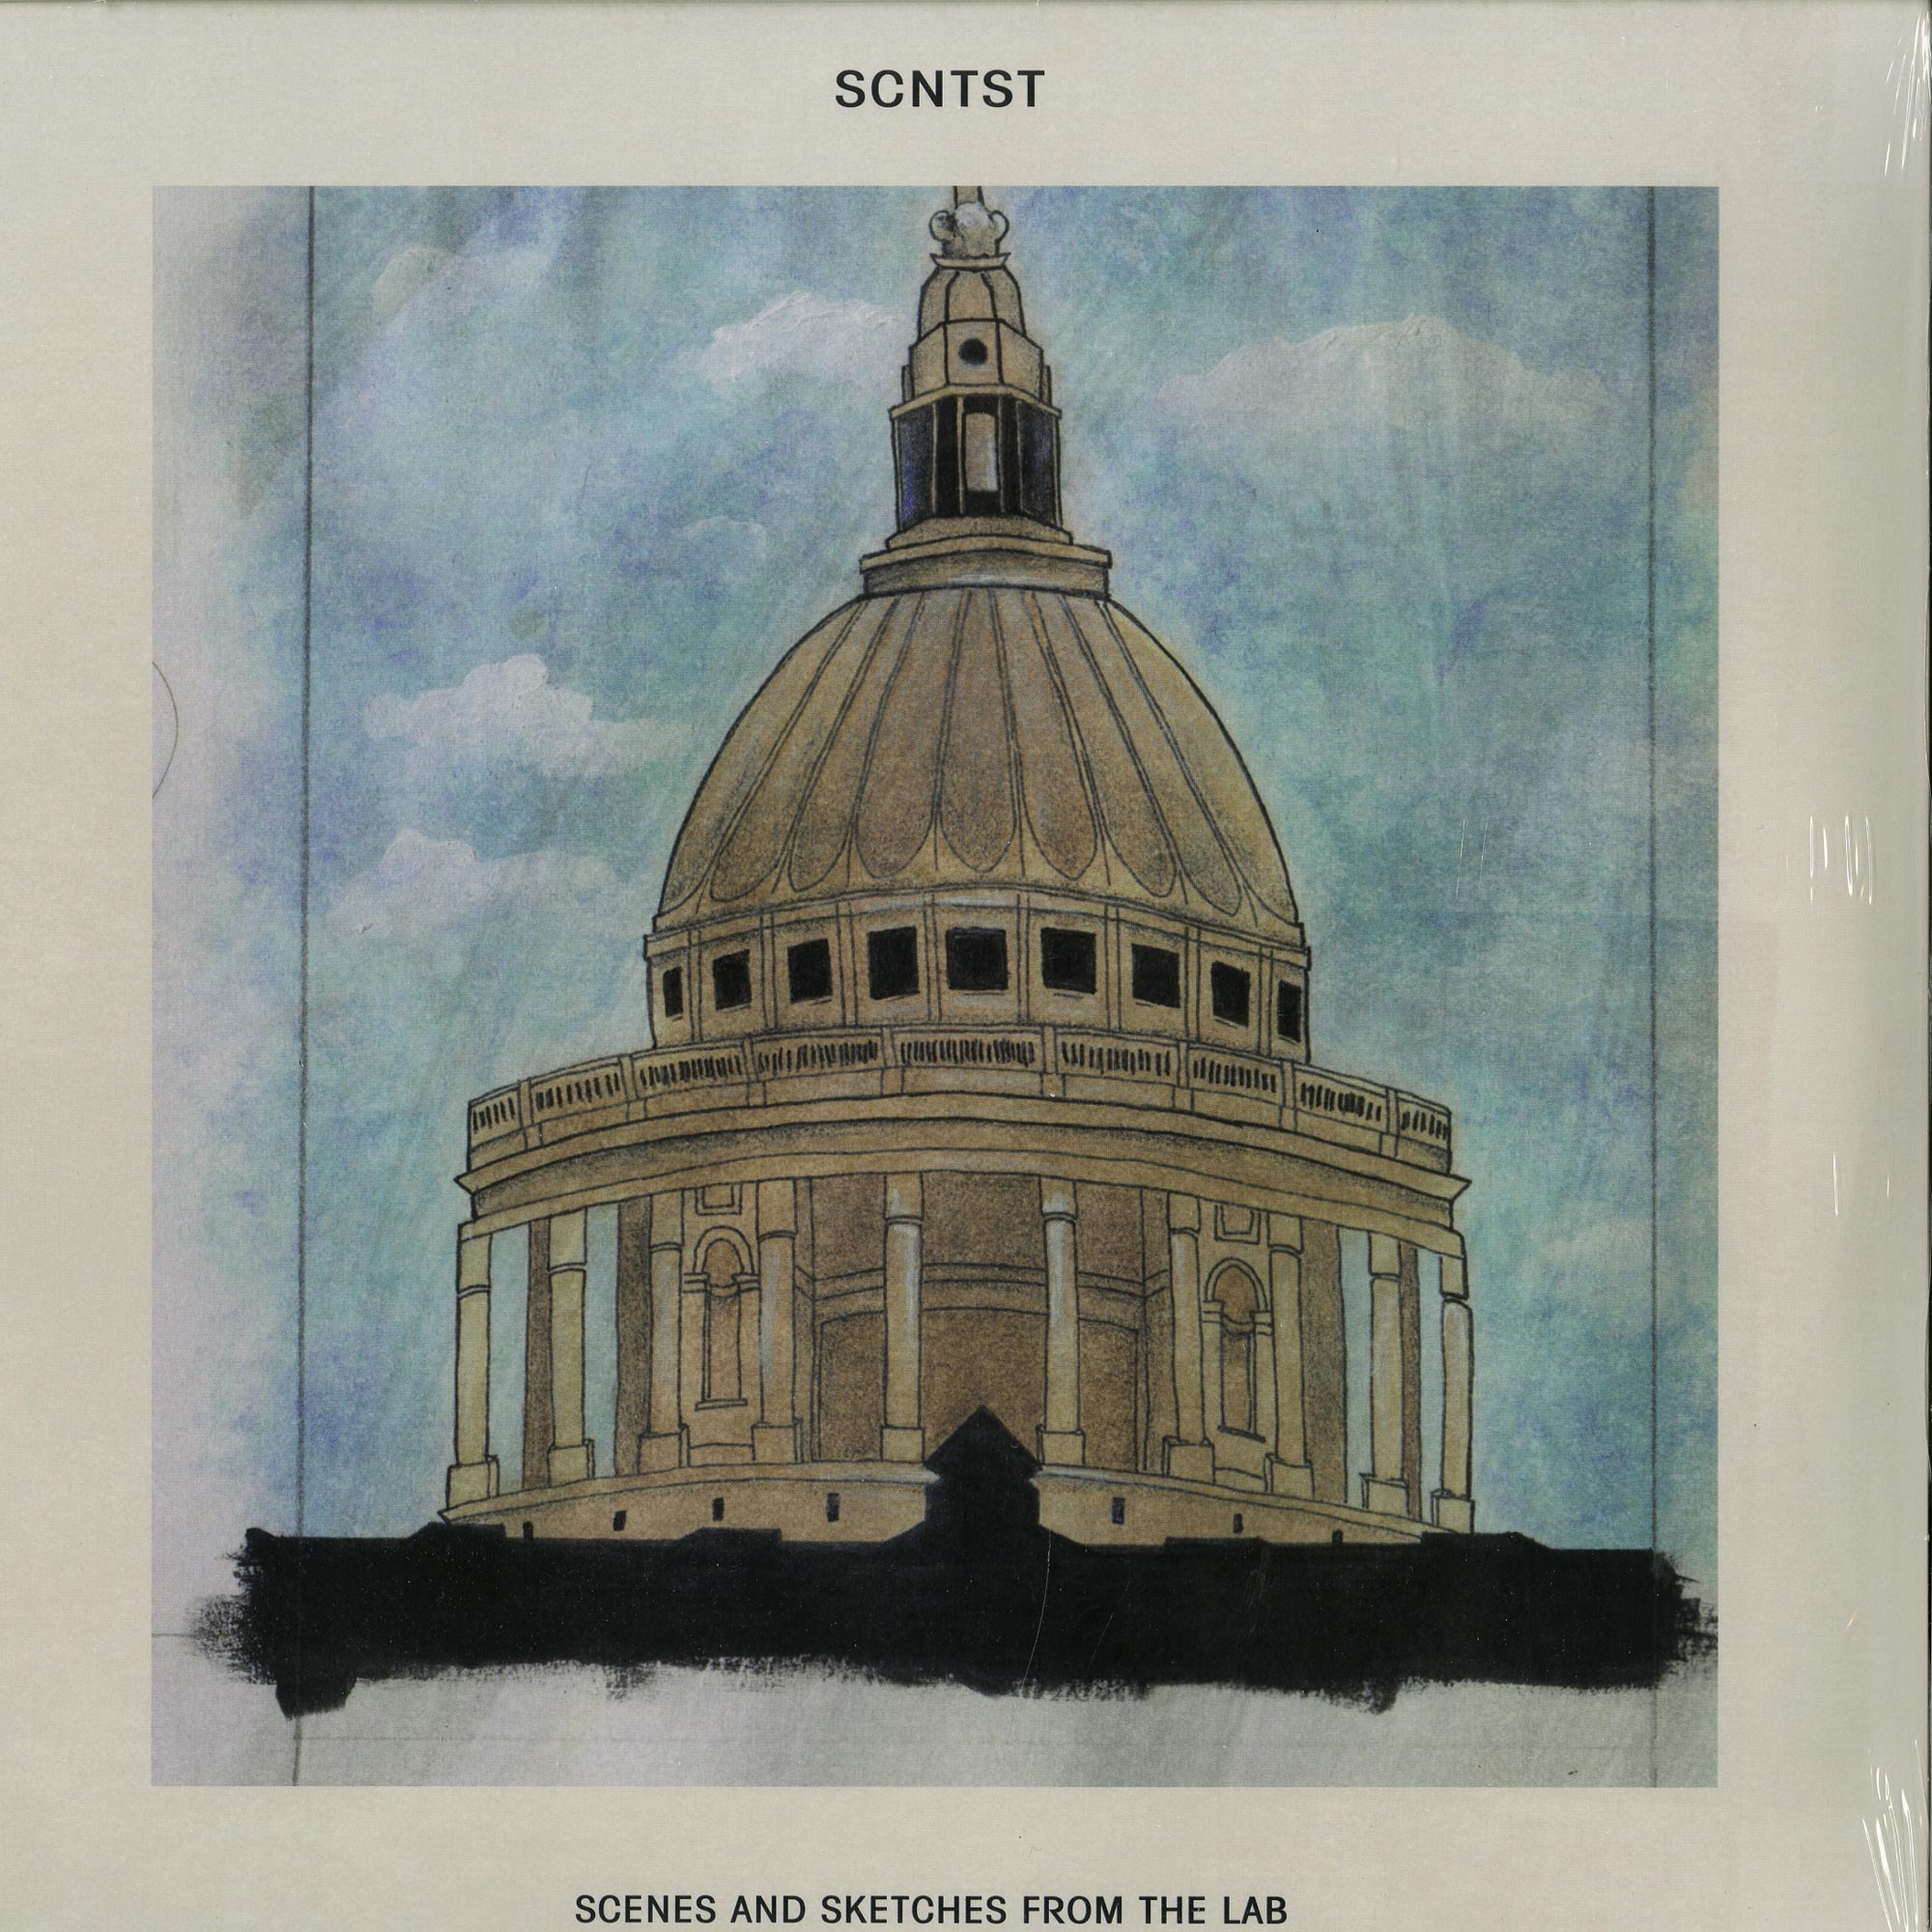 SCNTST - SCENES AND SKETCHES FROM THE LAB